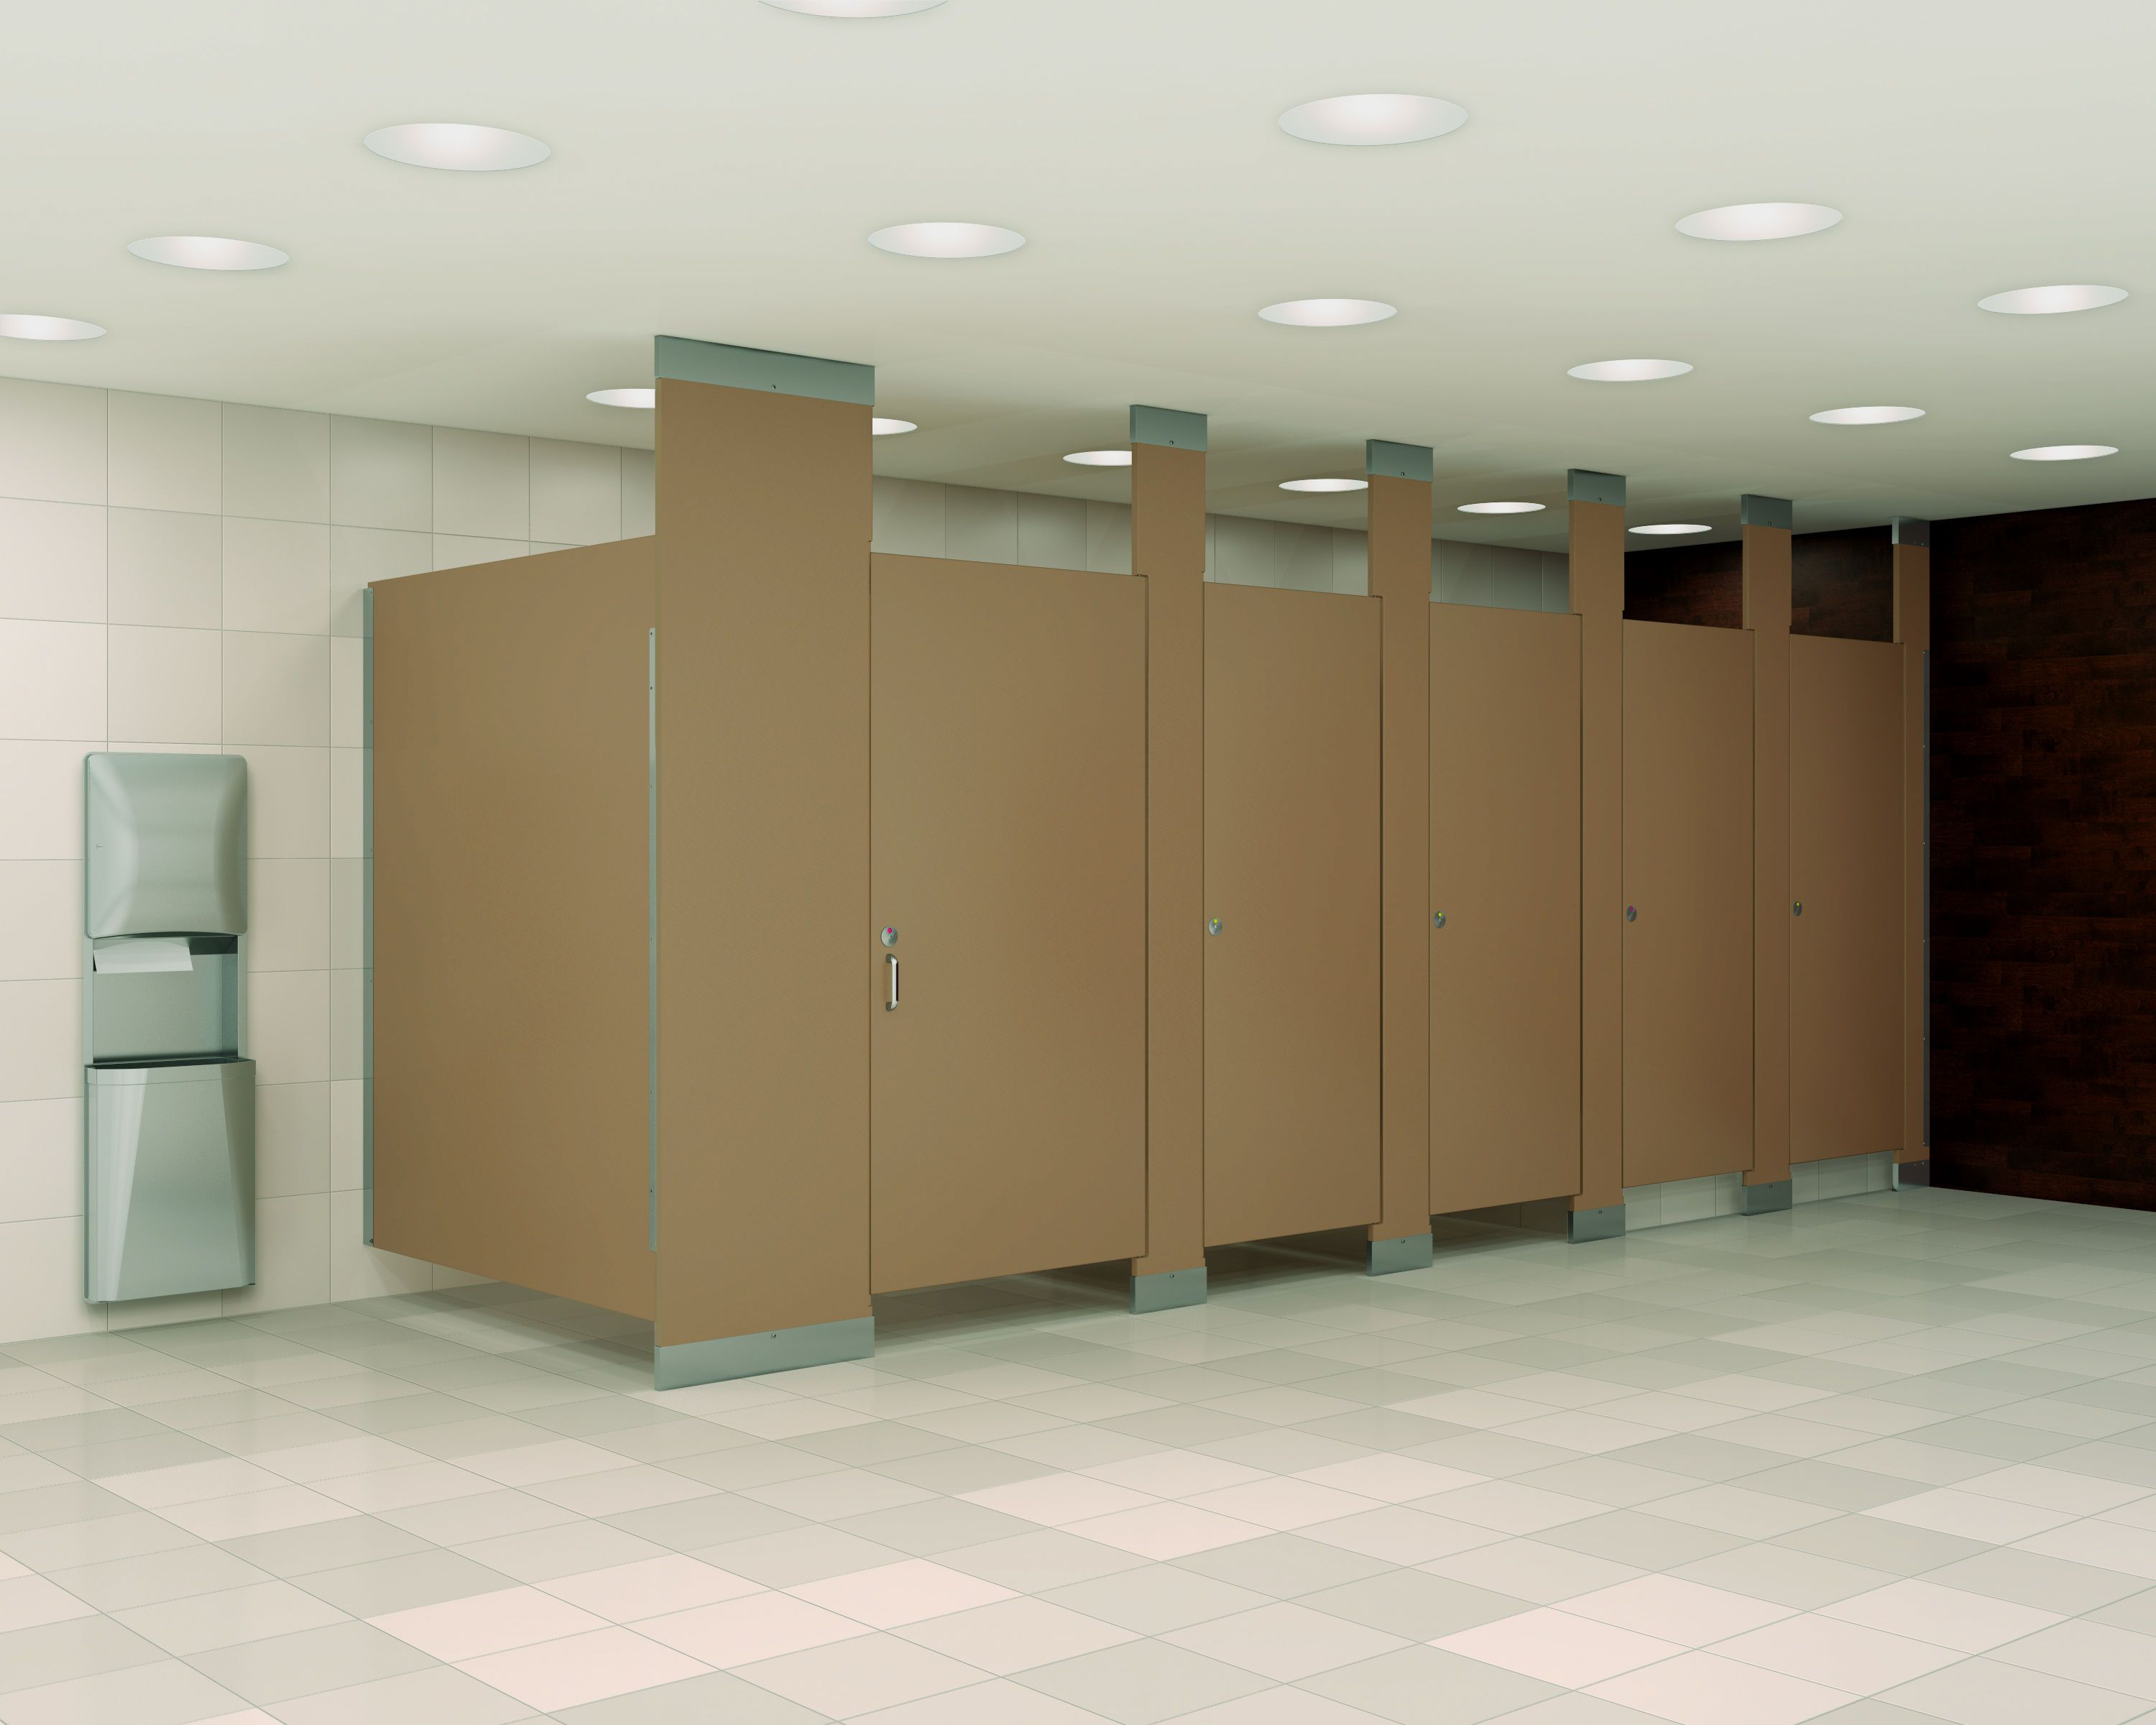 The Most Popular Material Choices For Stall Dividers For Commercial  Partitions For Industrial Bathrooms Can Range